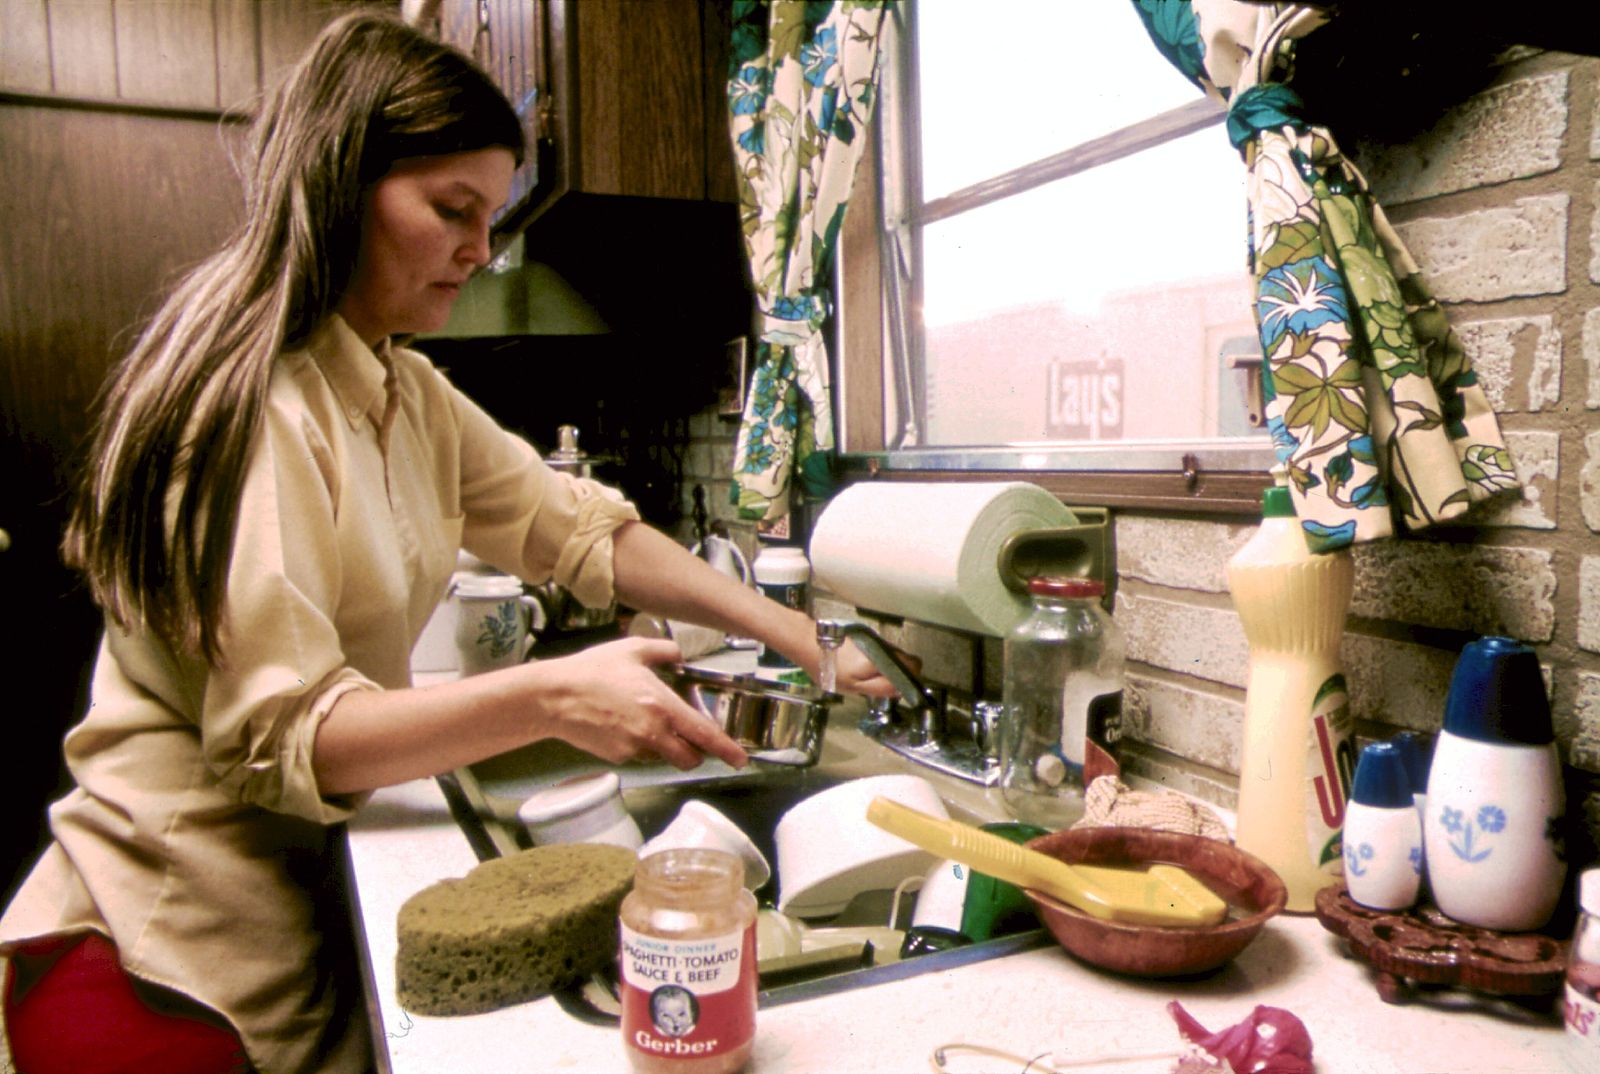 HOUSEWIFE_IN_THE_KITCHEN_OF_HER_MOBILE_HOME_IN_ONE_OF_THE_TRAILER_PARKS._THE_TWO_PARKS_WERE_CREATED_IN_RESPONSE_TO..._-_NARA_-_558298.jpg